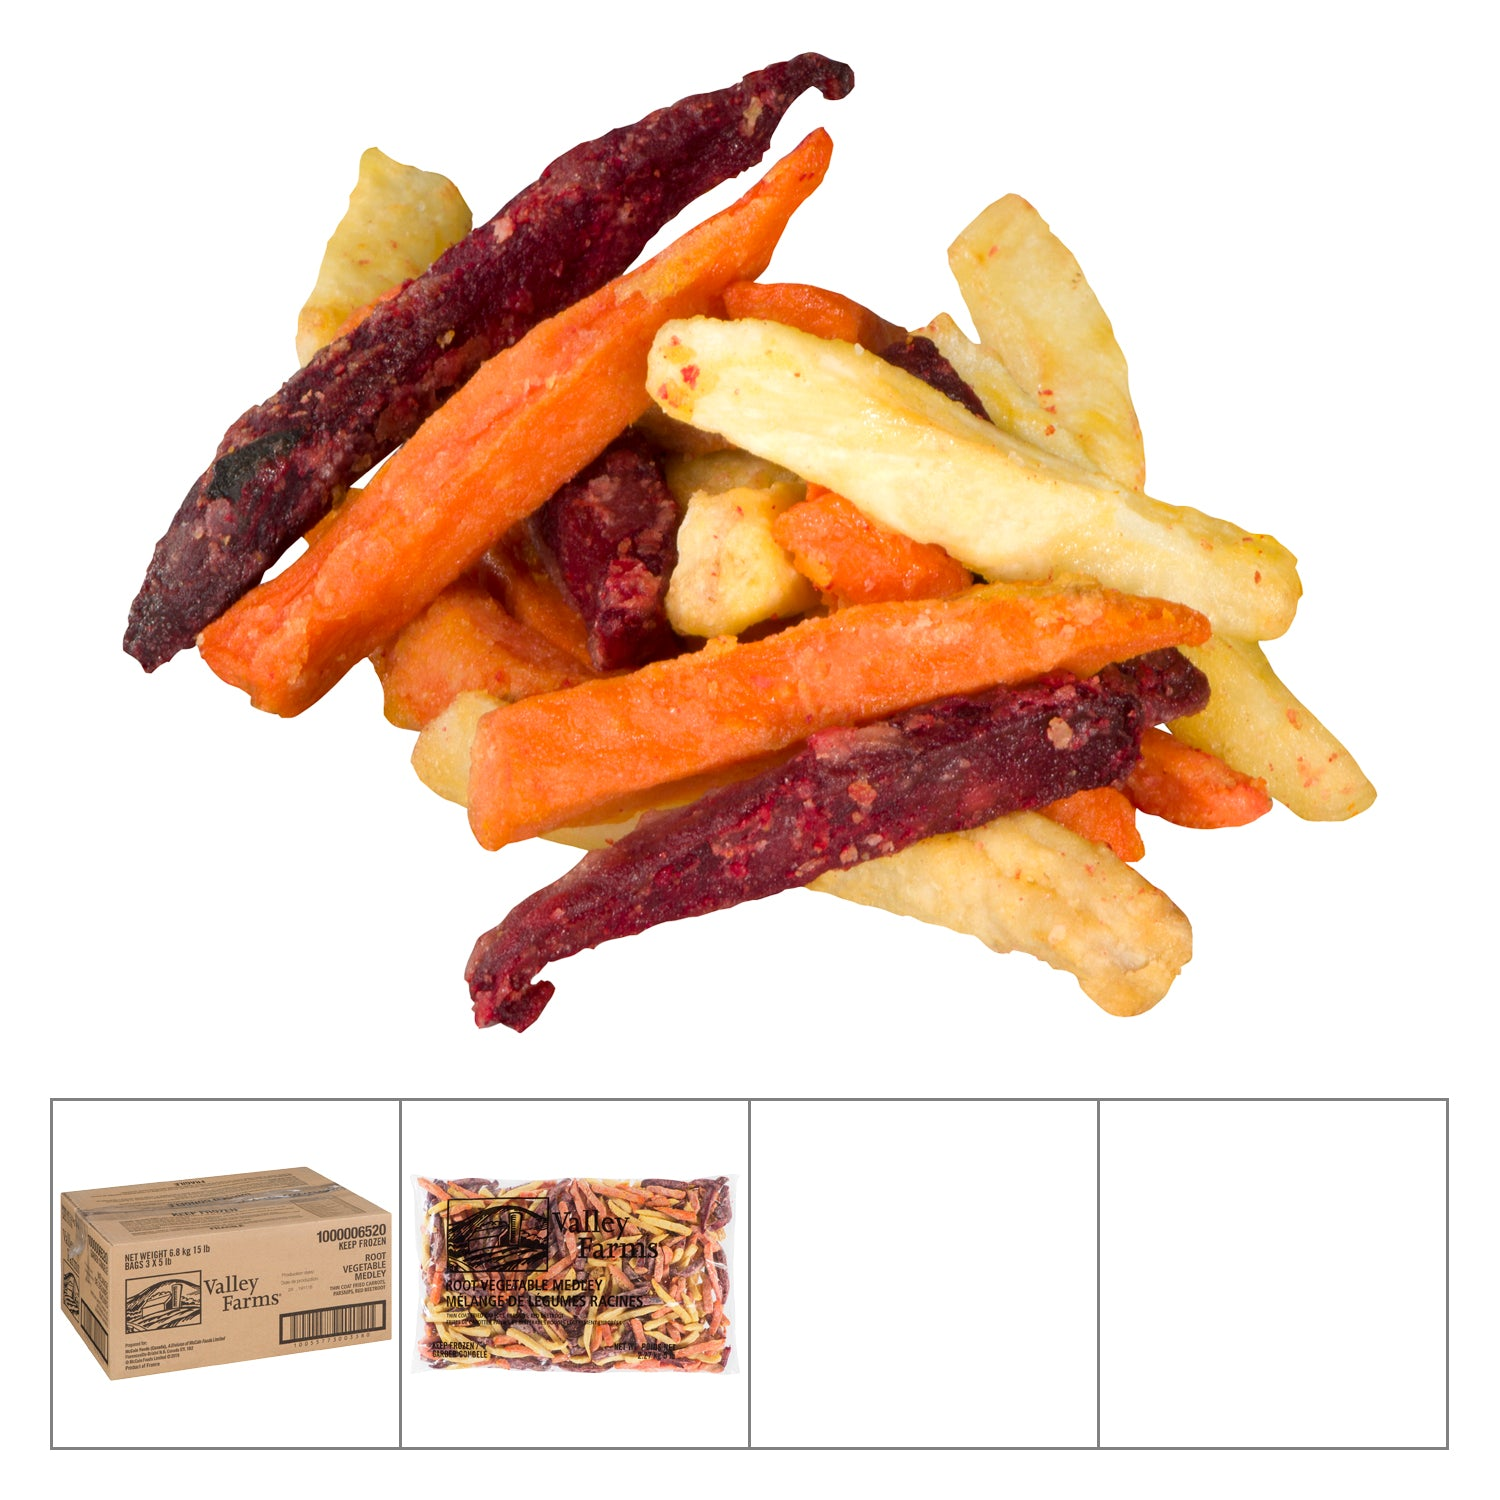 Valley Farms Frozen Straight Cut Root Vegetable Fries 5 lb - 3 Pack [$4.93/lb]